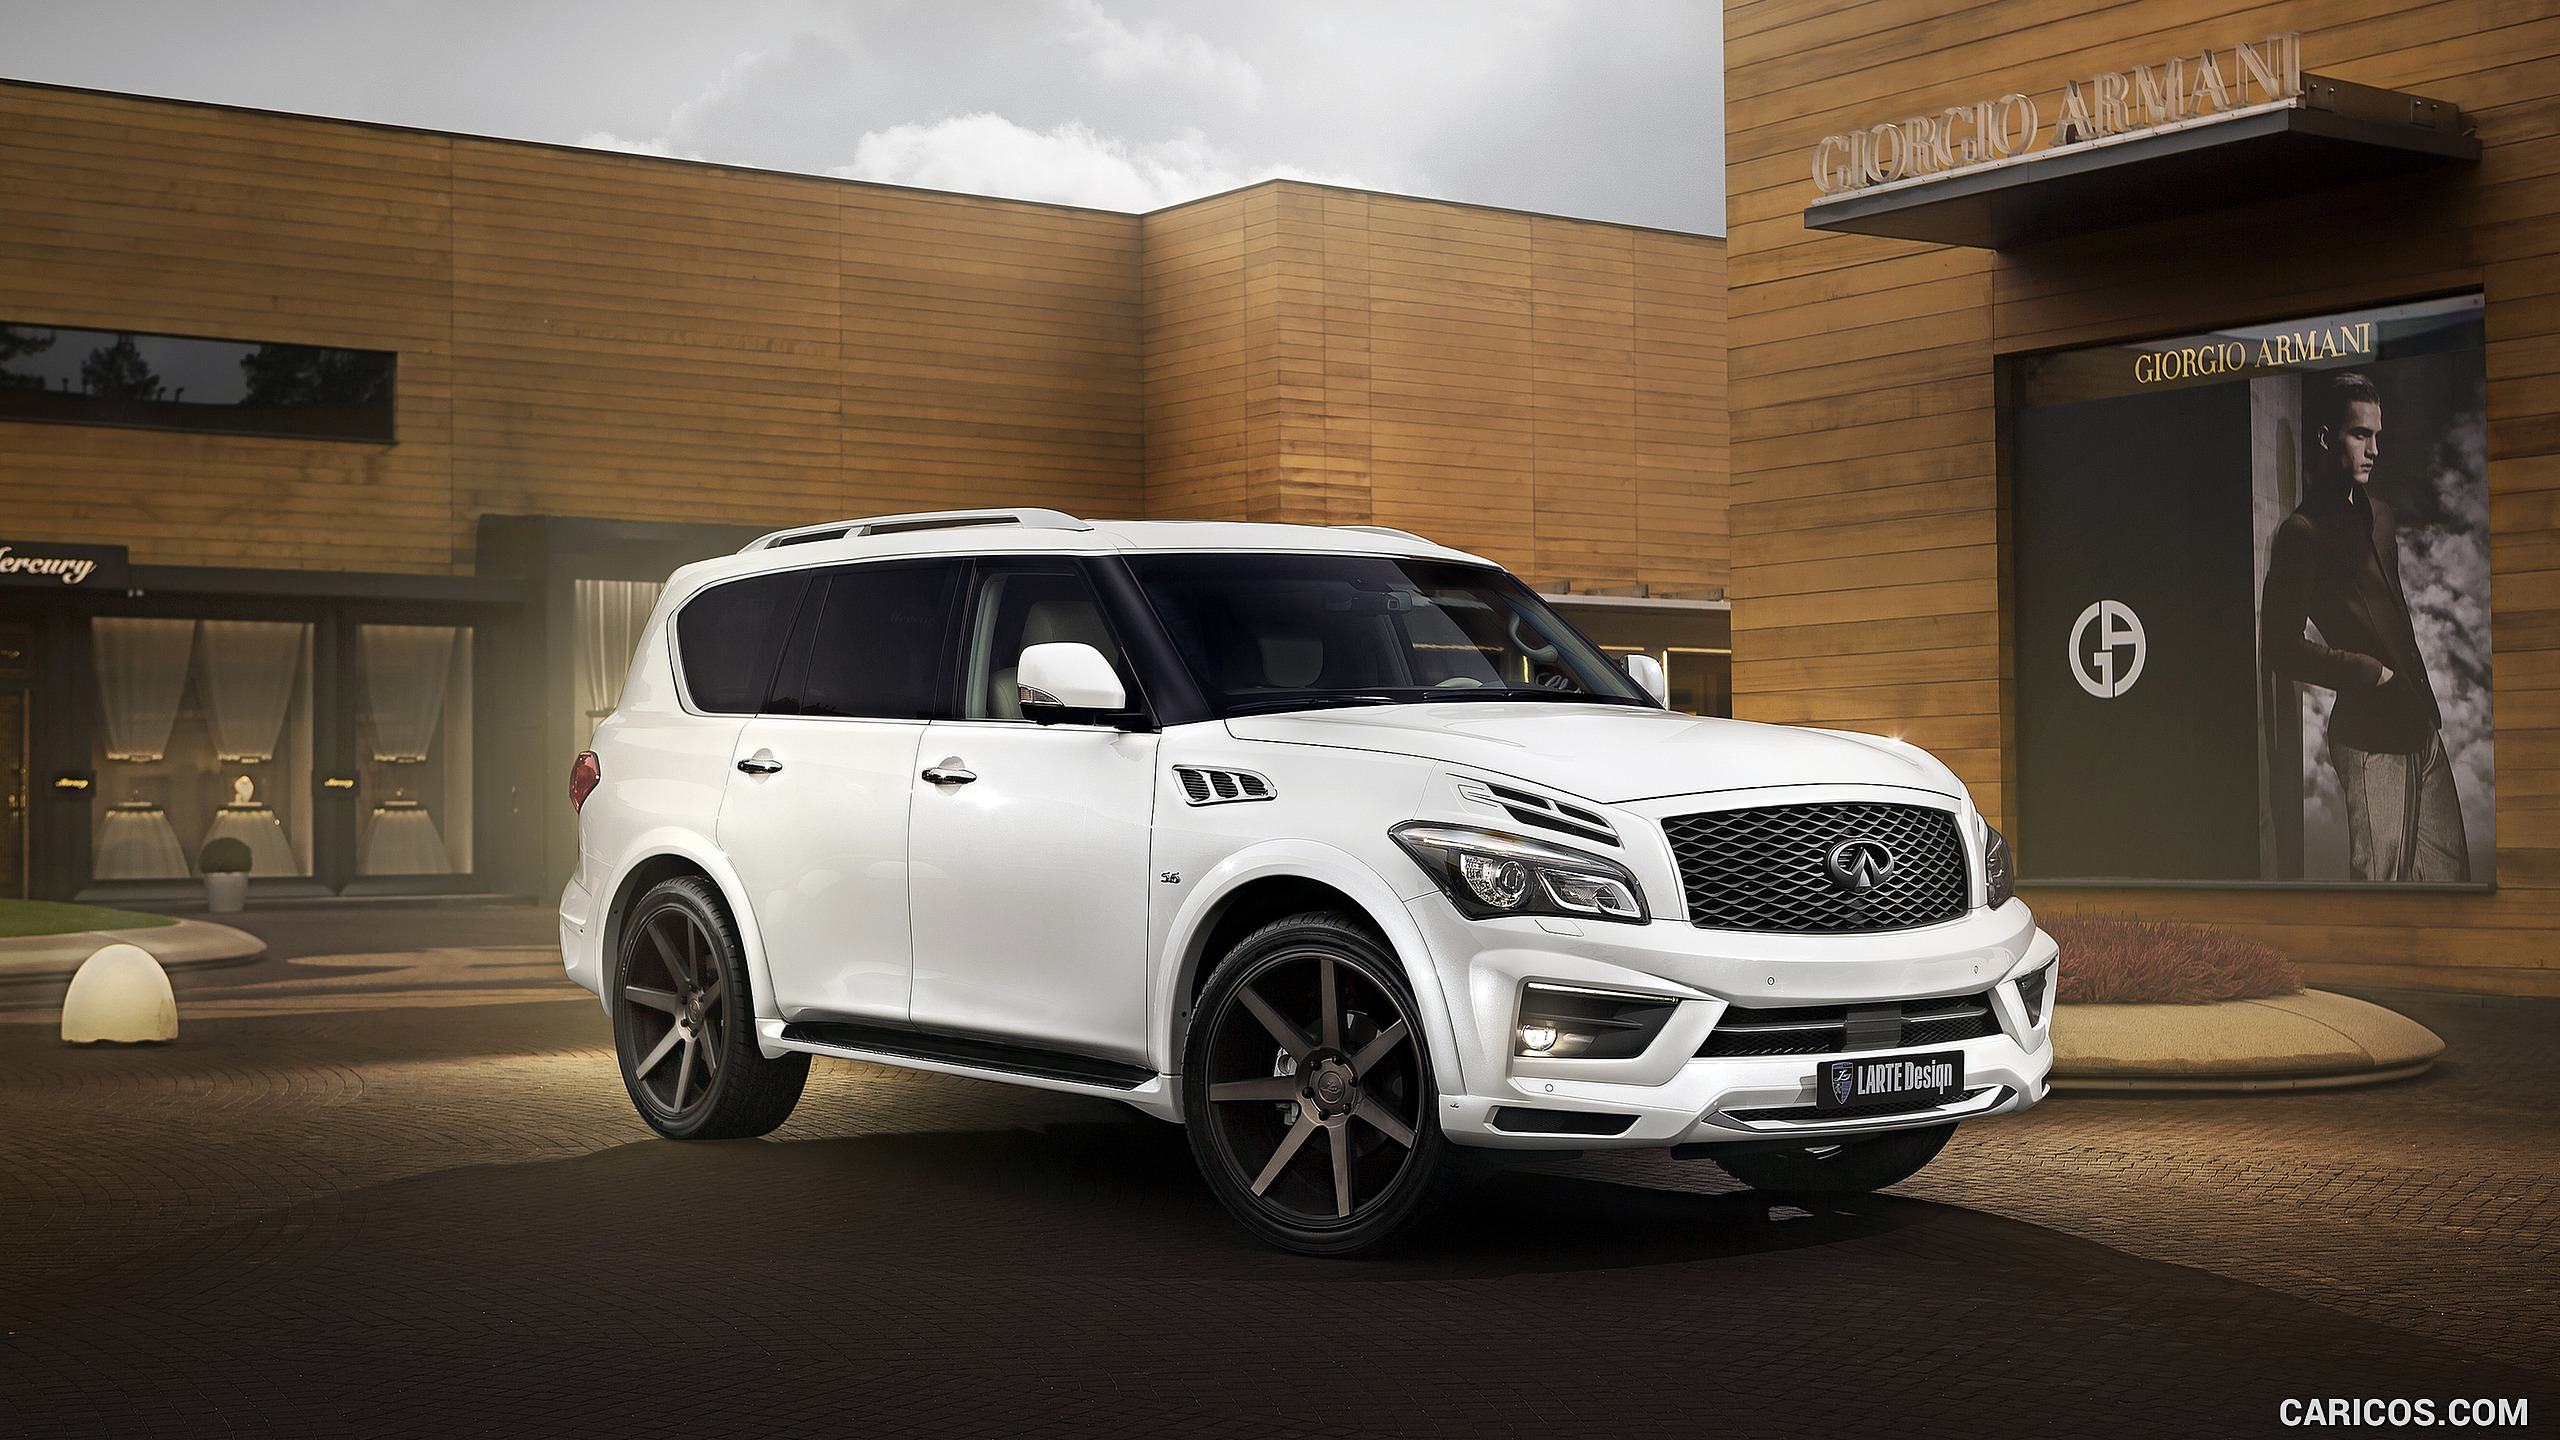 2560x1440 - Infiniti QX80 Wallpapers 27